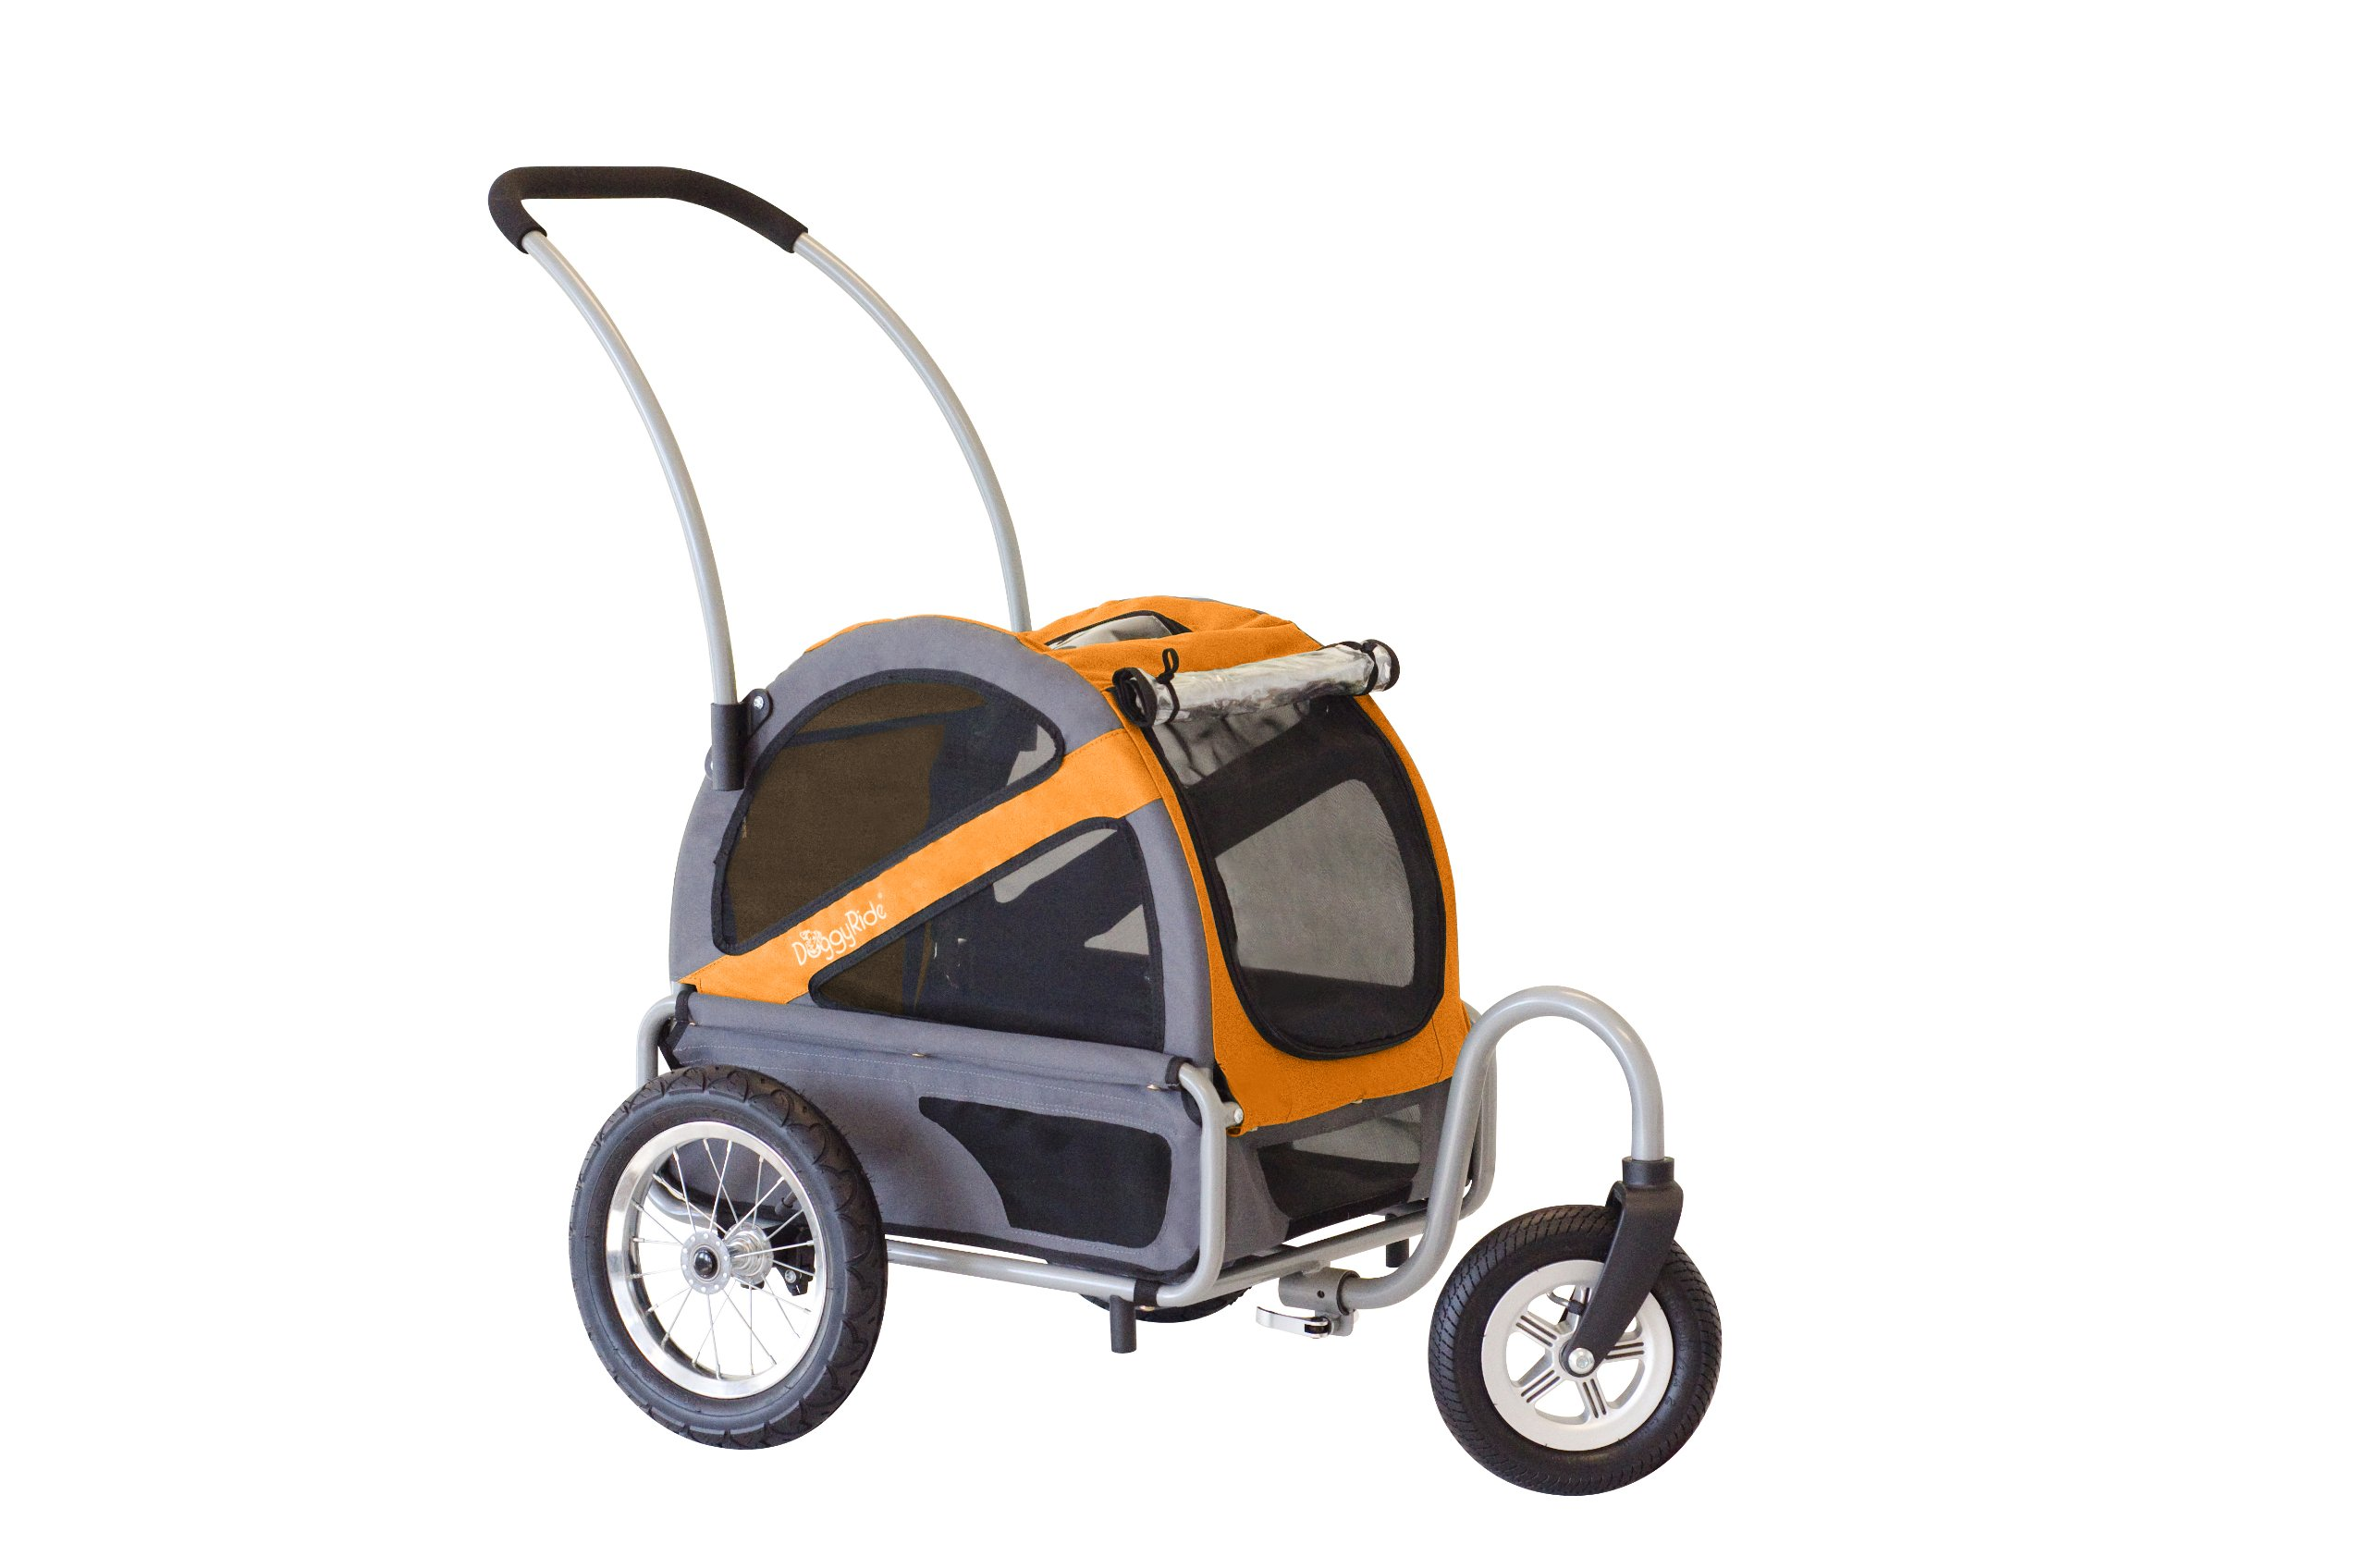 DoggyRide Dog Stroller, Mini, Dutch Orange/Grey